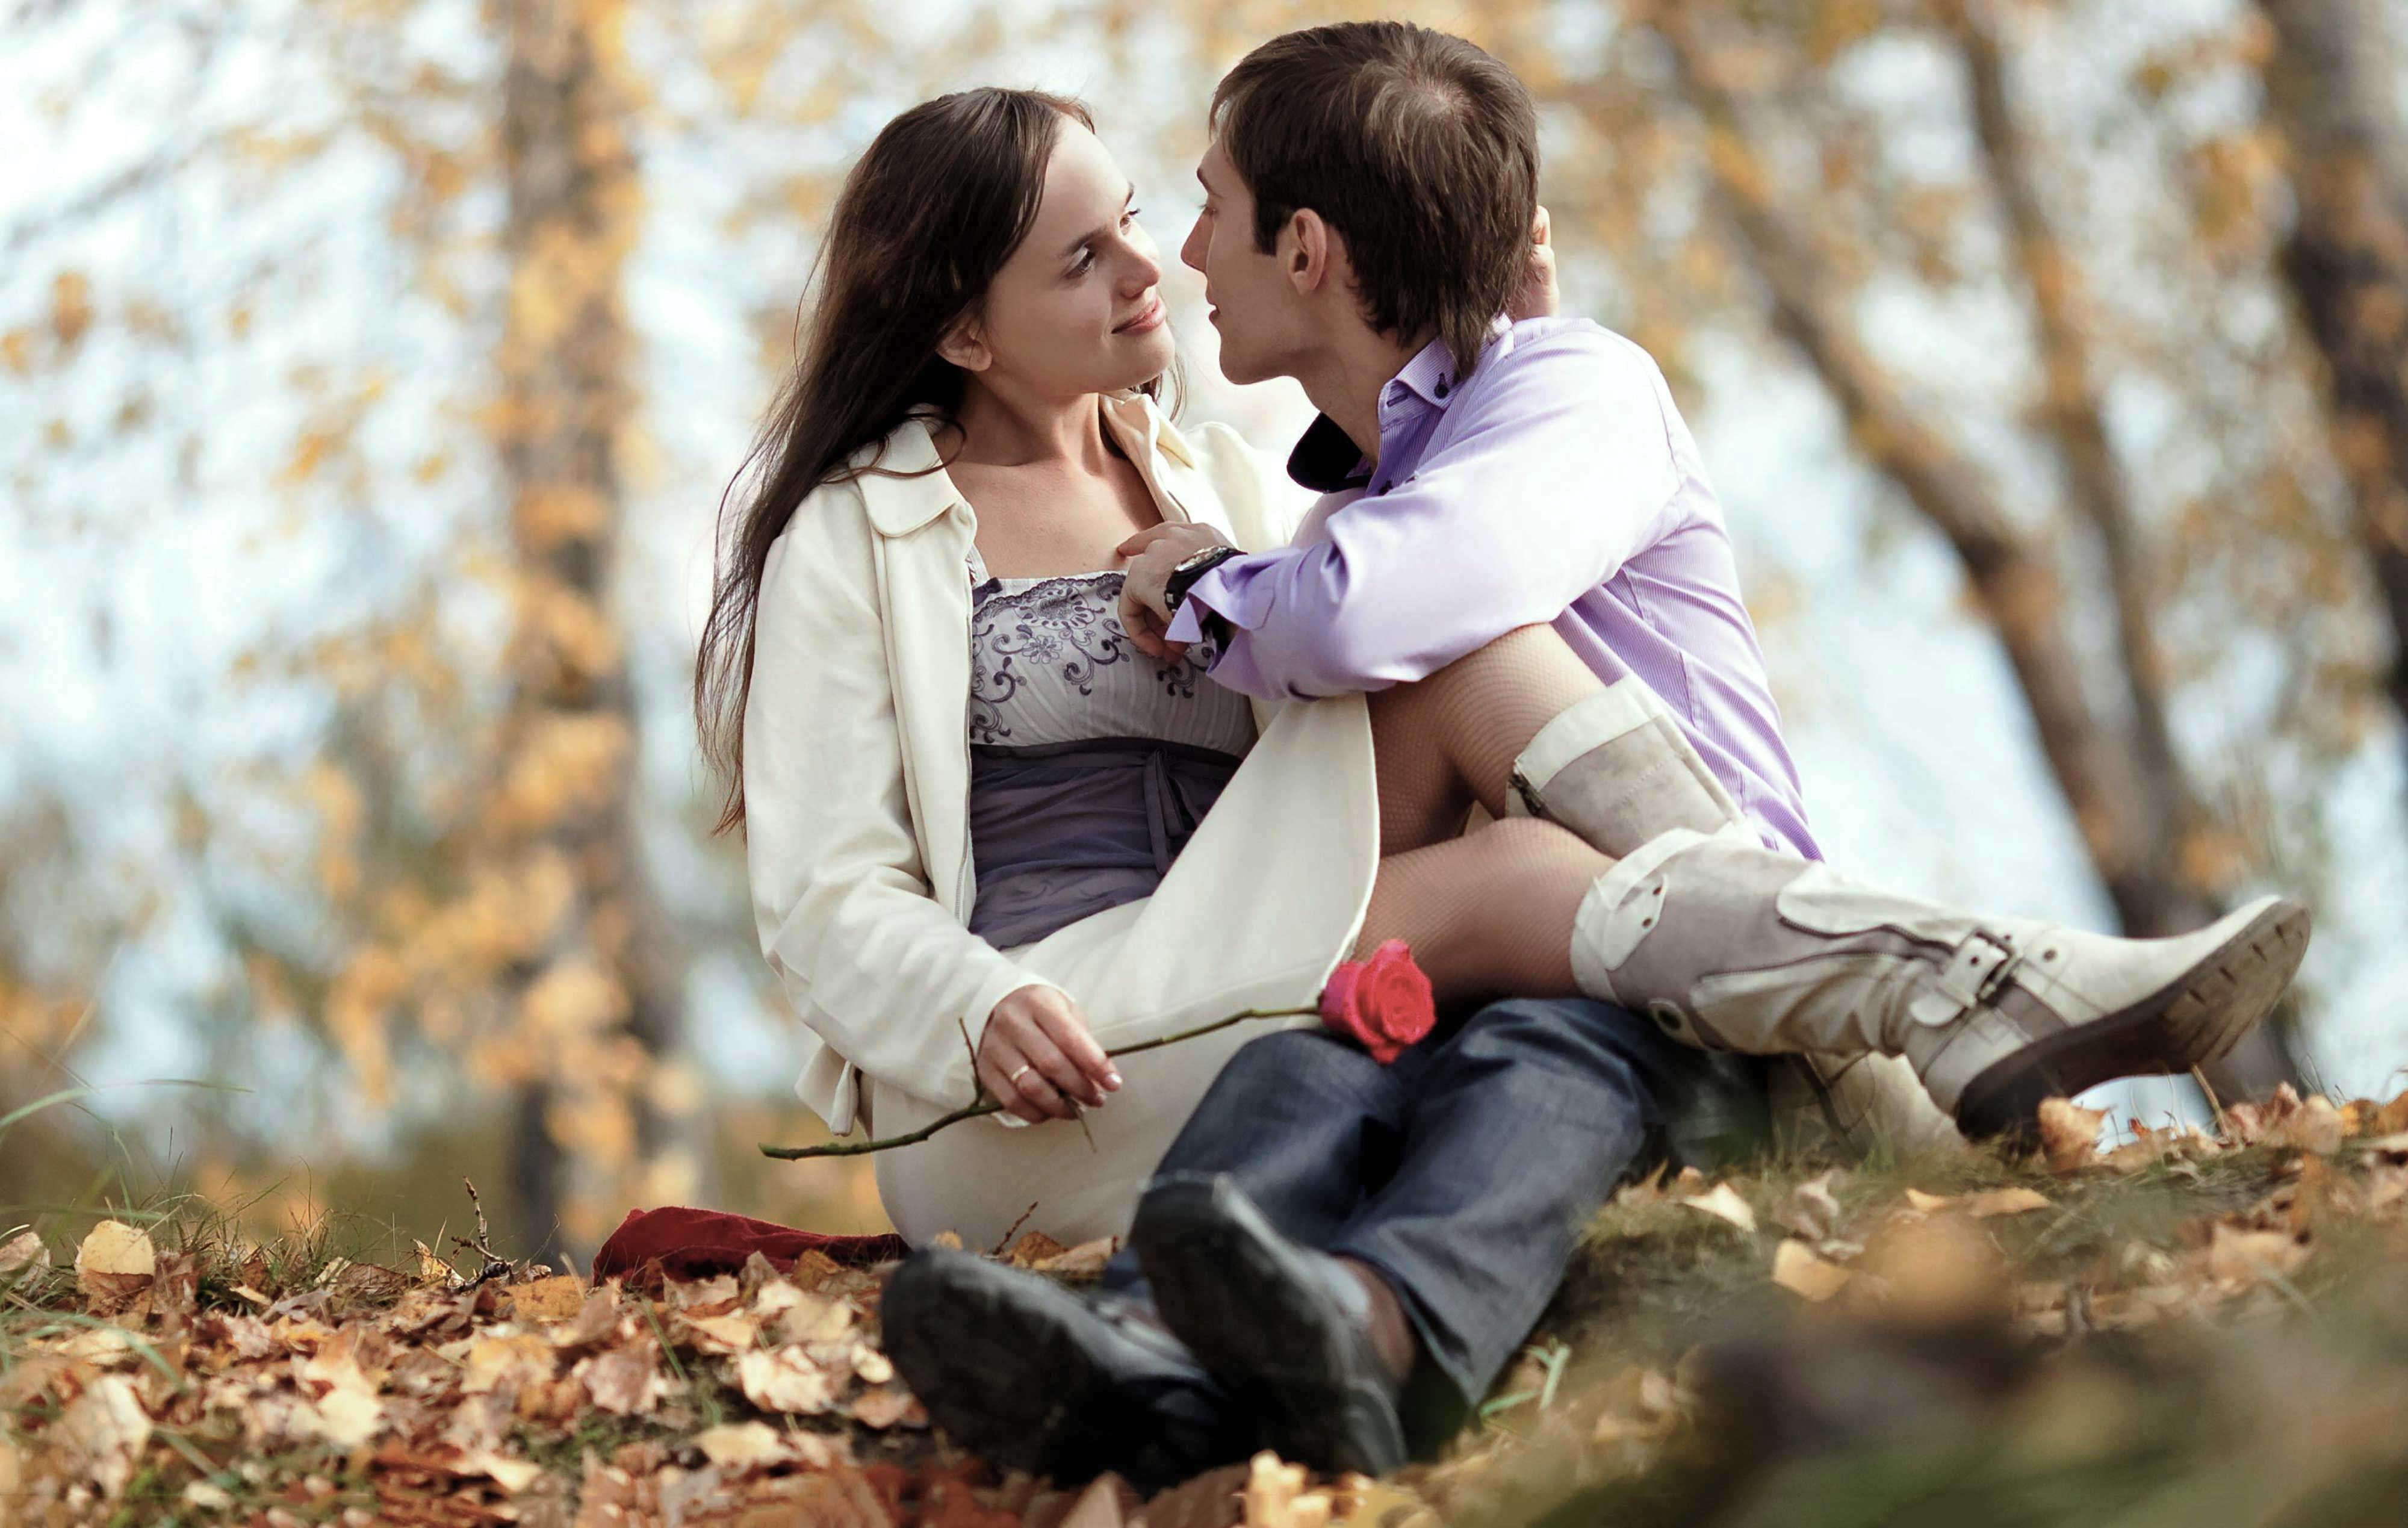 Love Images Wallpaper Large Size : Best best images of love couple - 40 Romantic couple Wallpapers Hd Love couple Images with Best ...